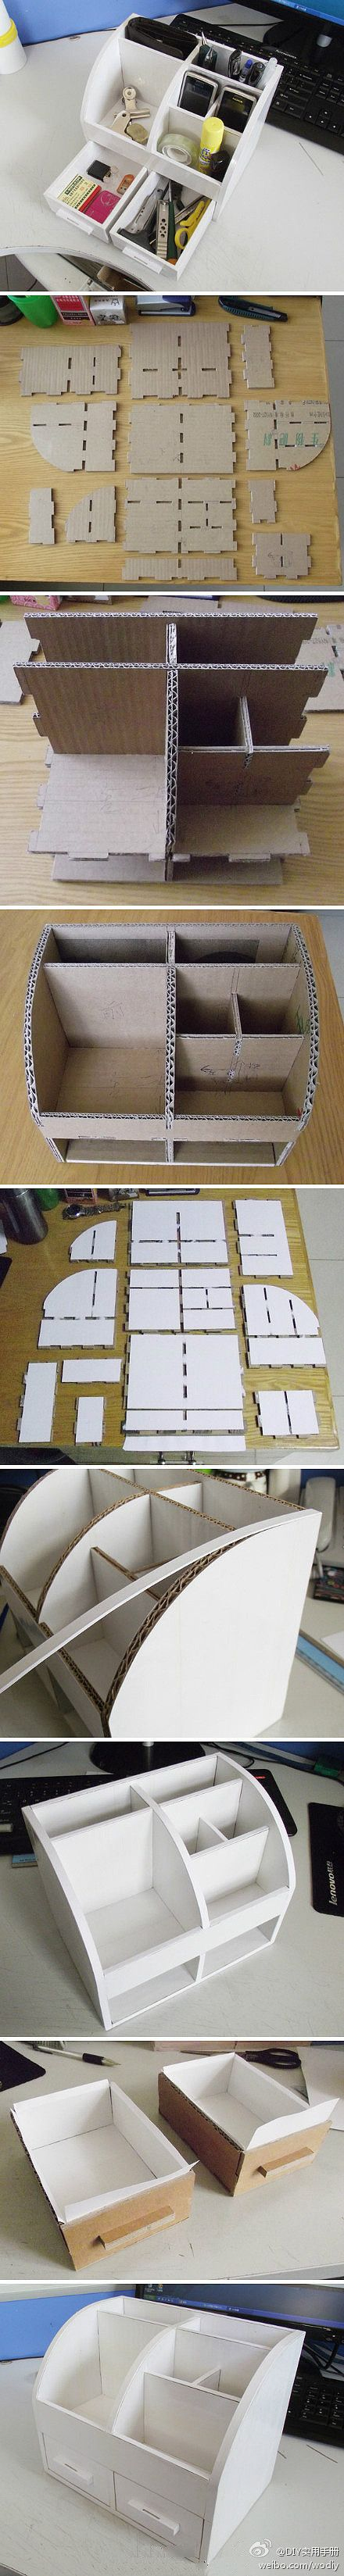 building an office organizer from cardboard